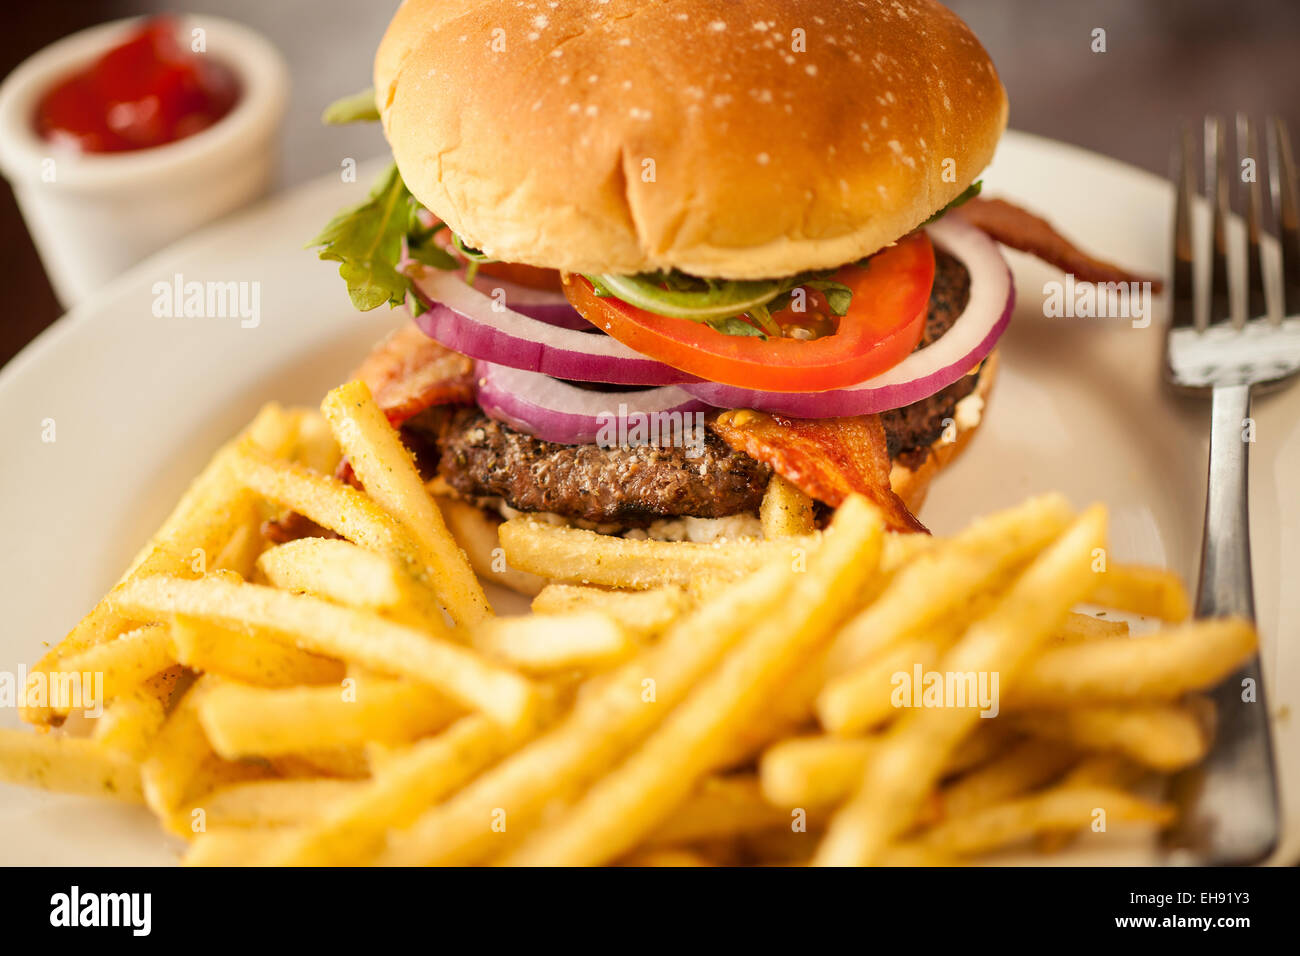 Fig 'n' Tasty burger, Char Grilled Califoria Wagyu Beef Patty Topped with Applewood Bacon, Goat Cheese, House made Stock Photo